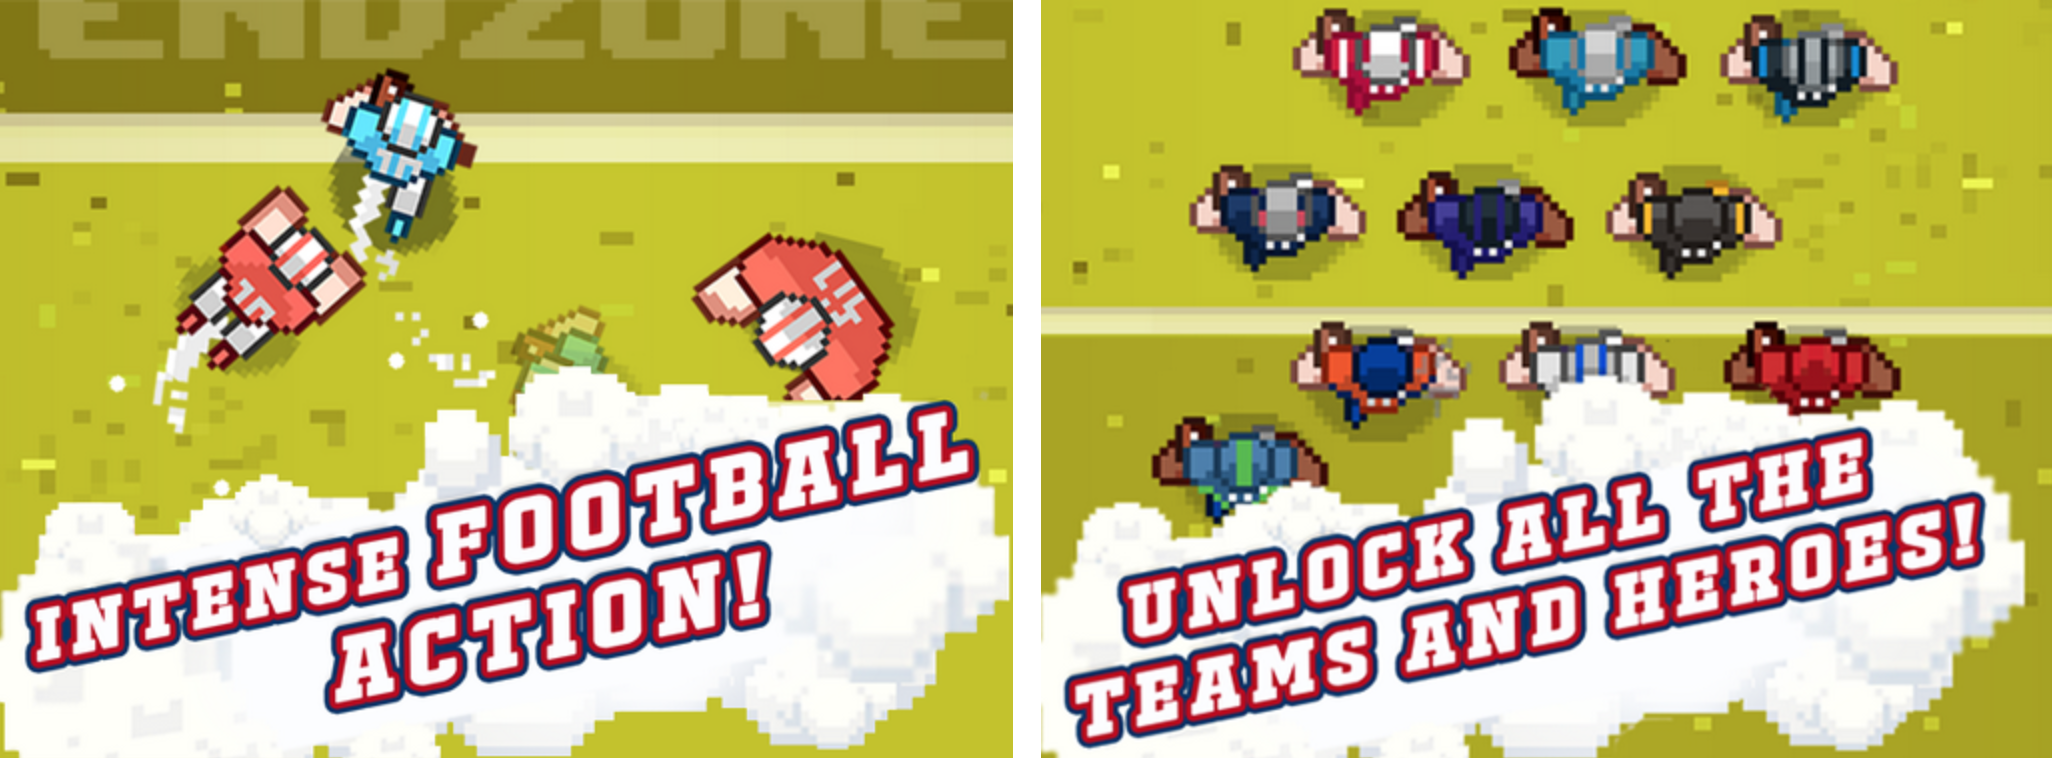 Go long! Touchdown Hero: New Season launches on iOS